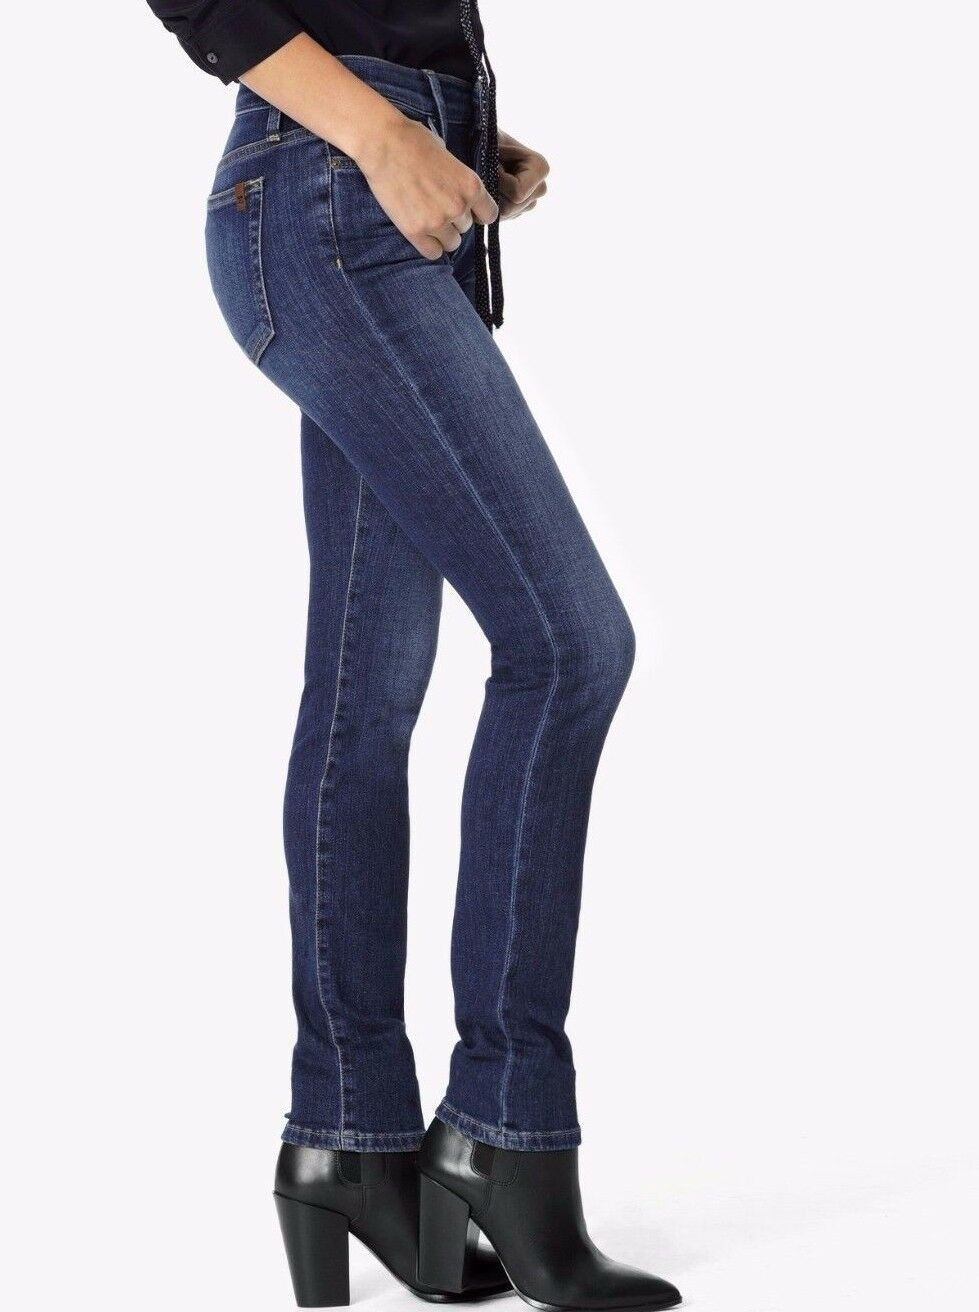 NWT JOE'S Sz27 THE CIGARETTE FLAWLESS STRAIGHT-STRETCH JEANS LYNX blueE